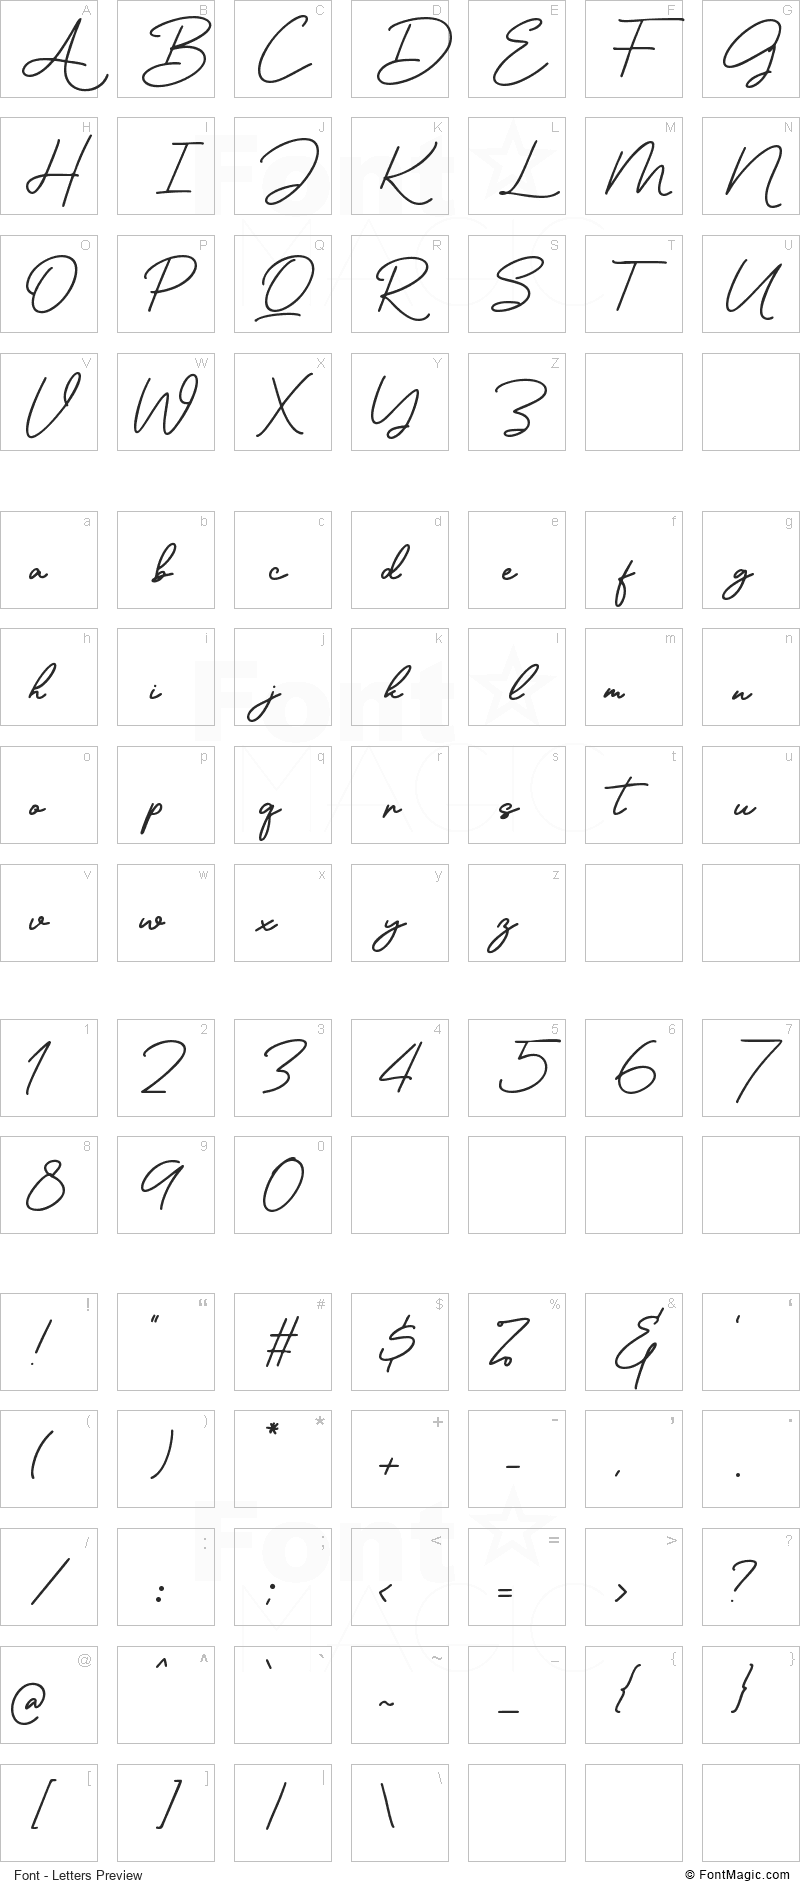 Ronallatie Font - All Latters Preview Chart